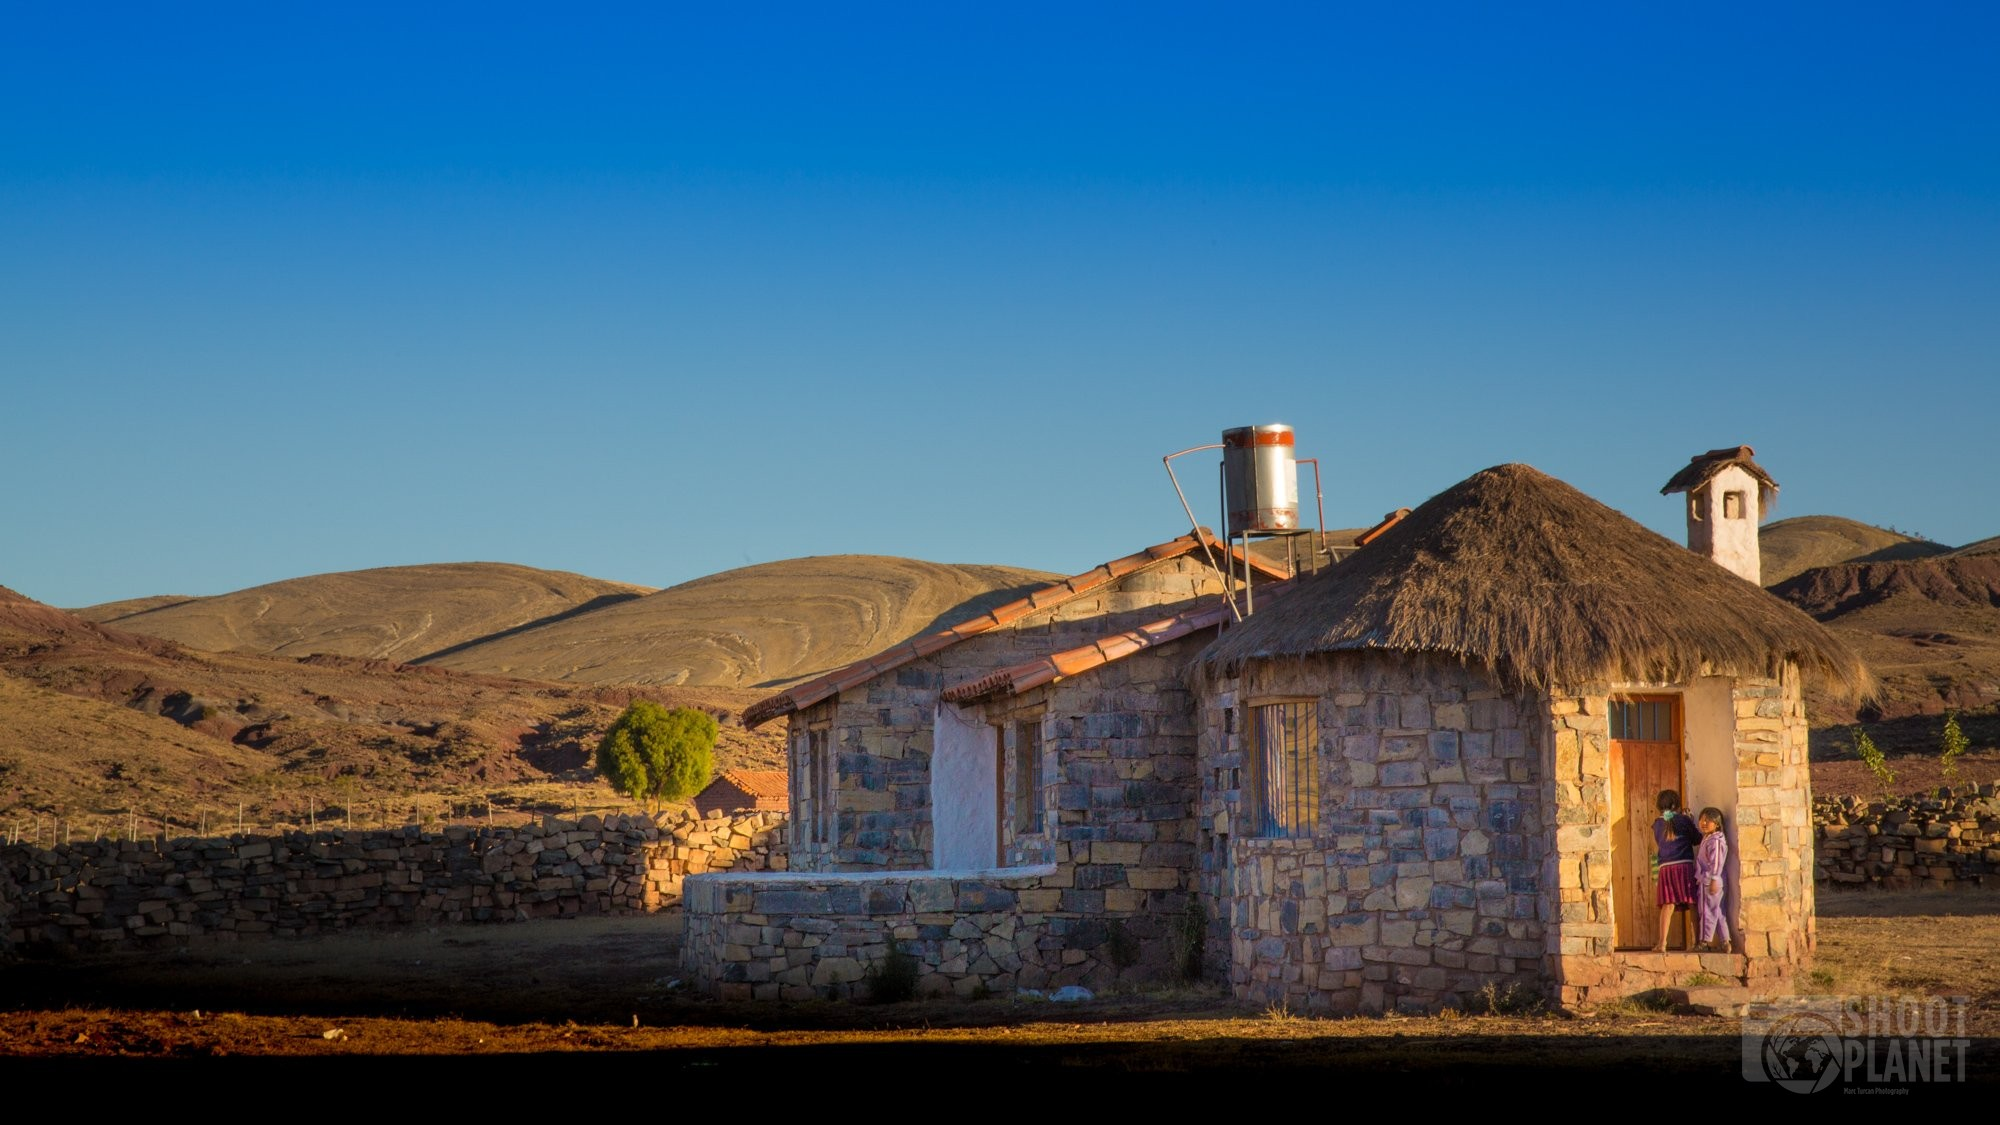 House in Maragua crater village, Bolivia